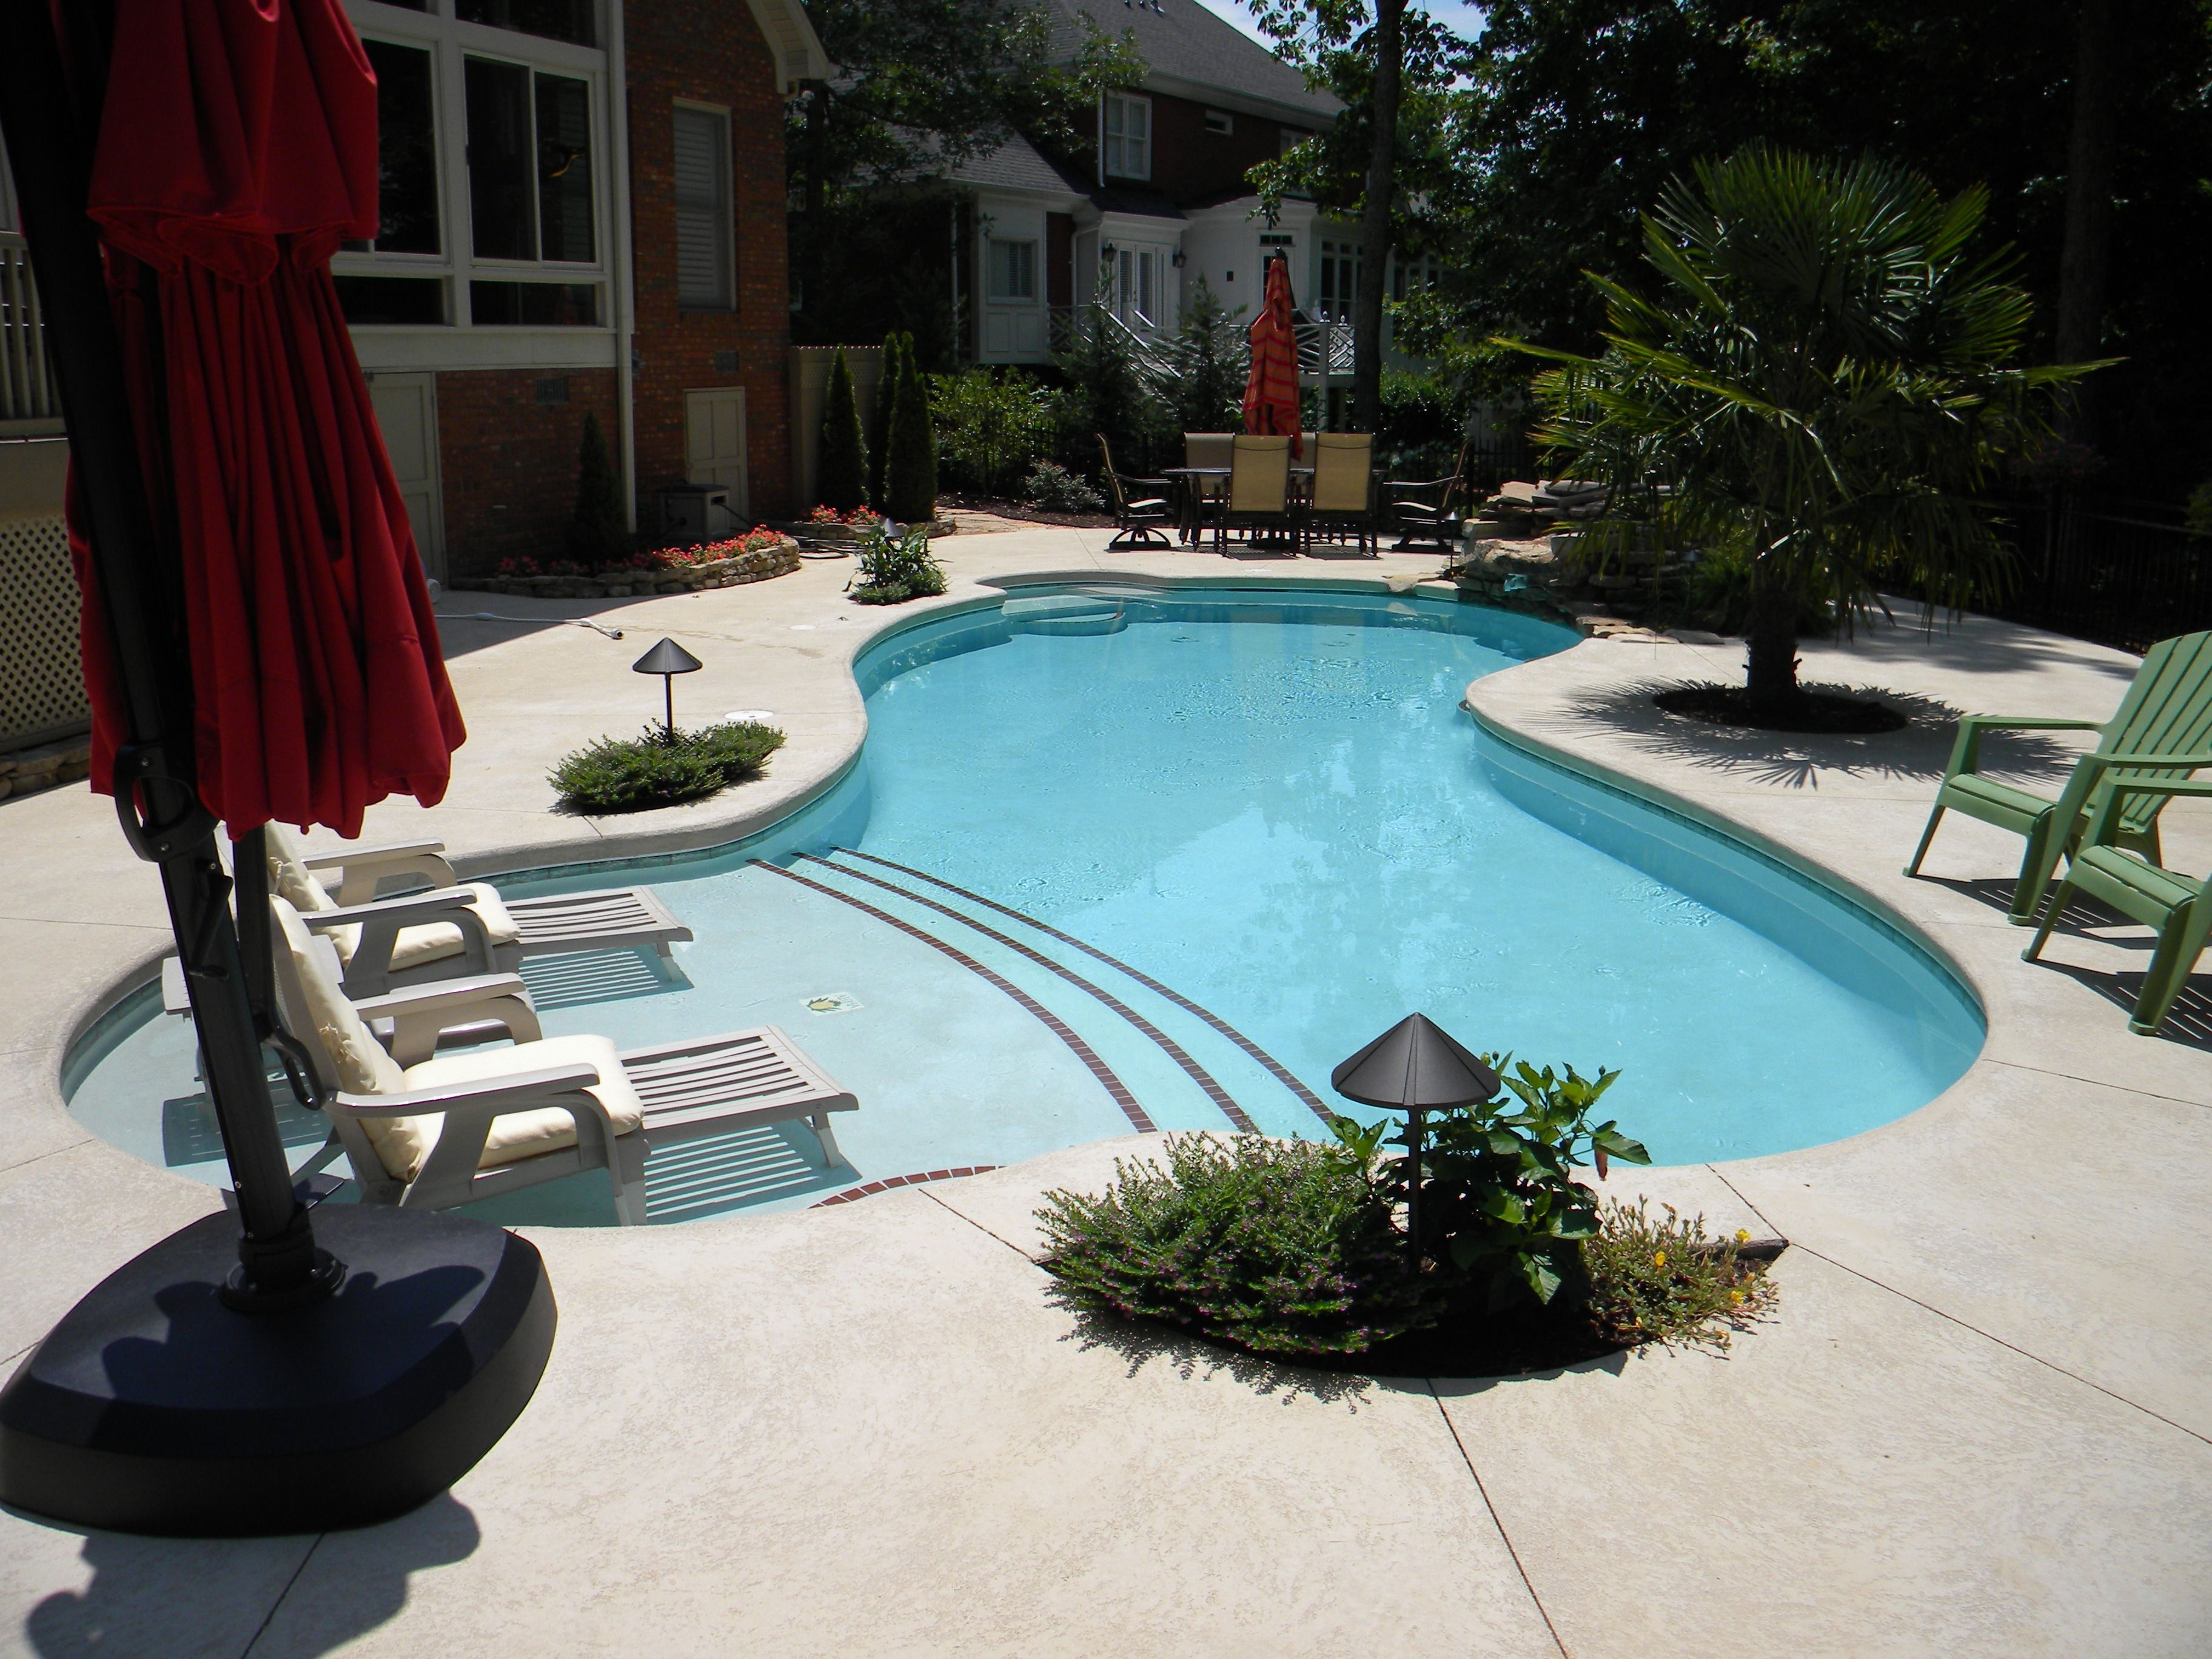 Residential swimming pool in Greenville SC with a sun deck